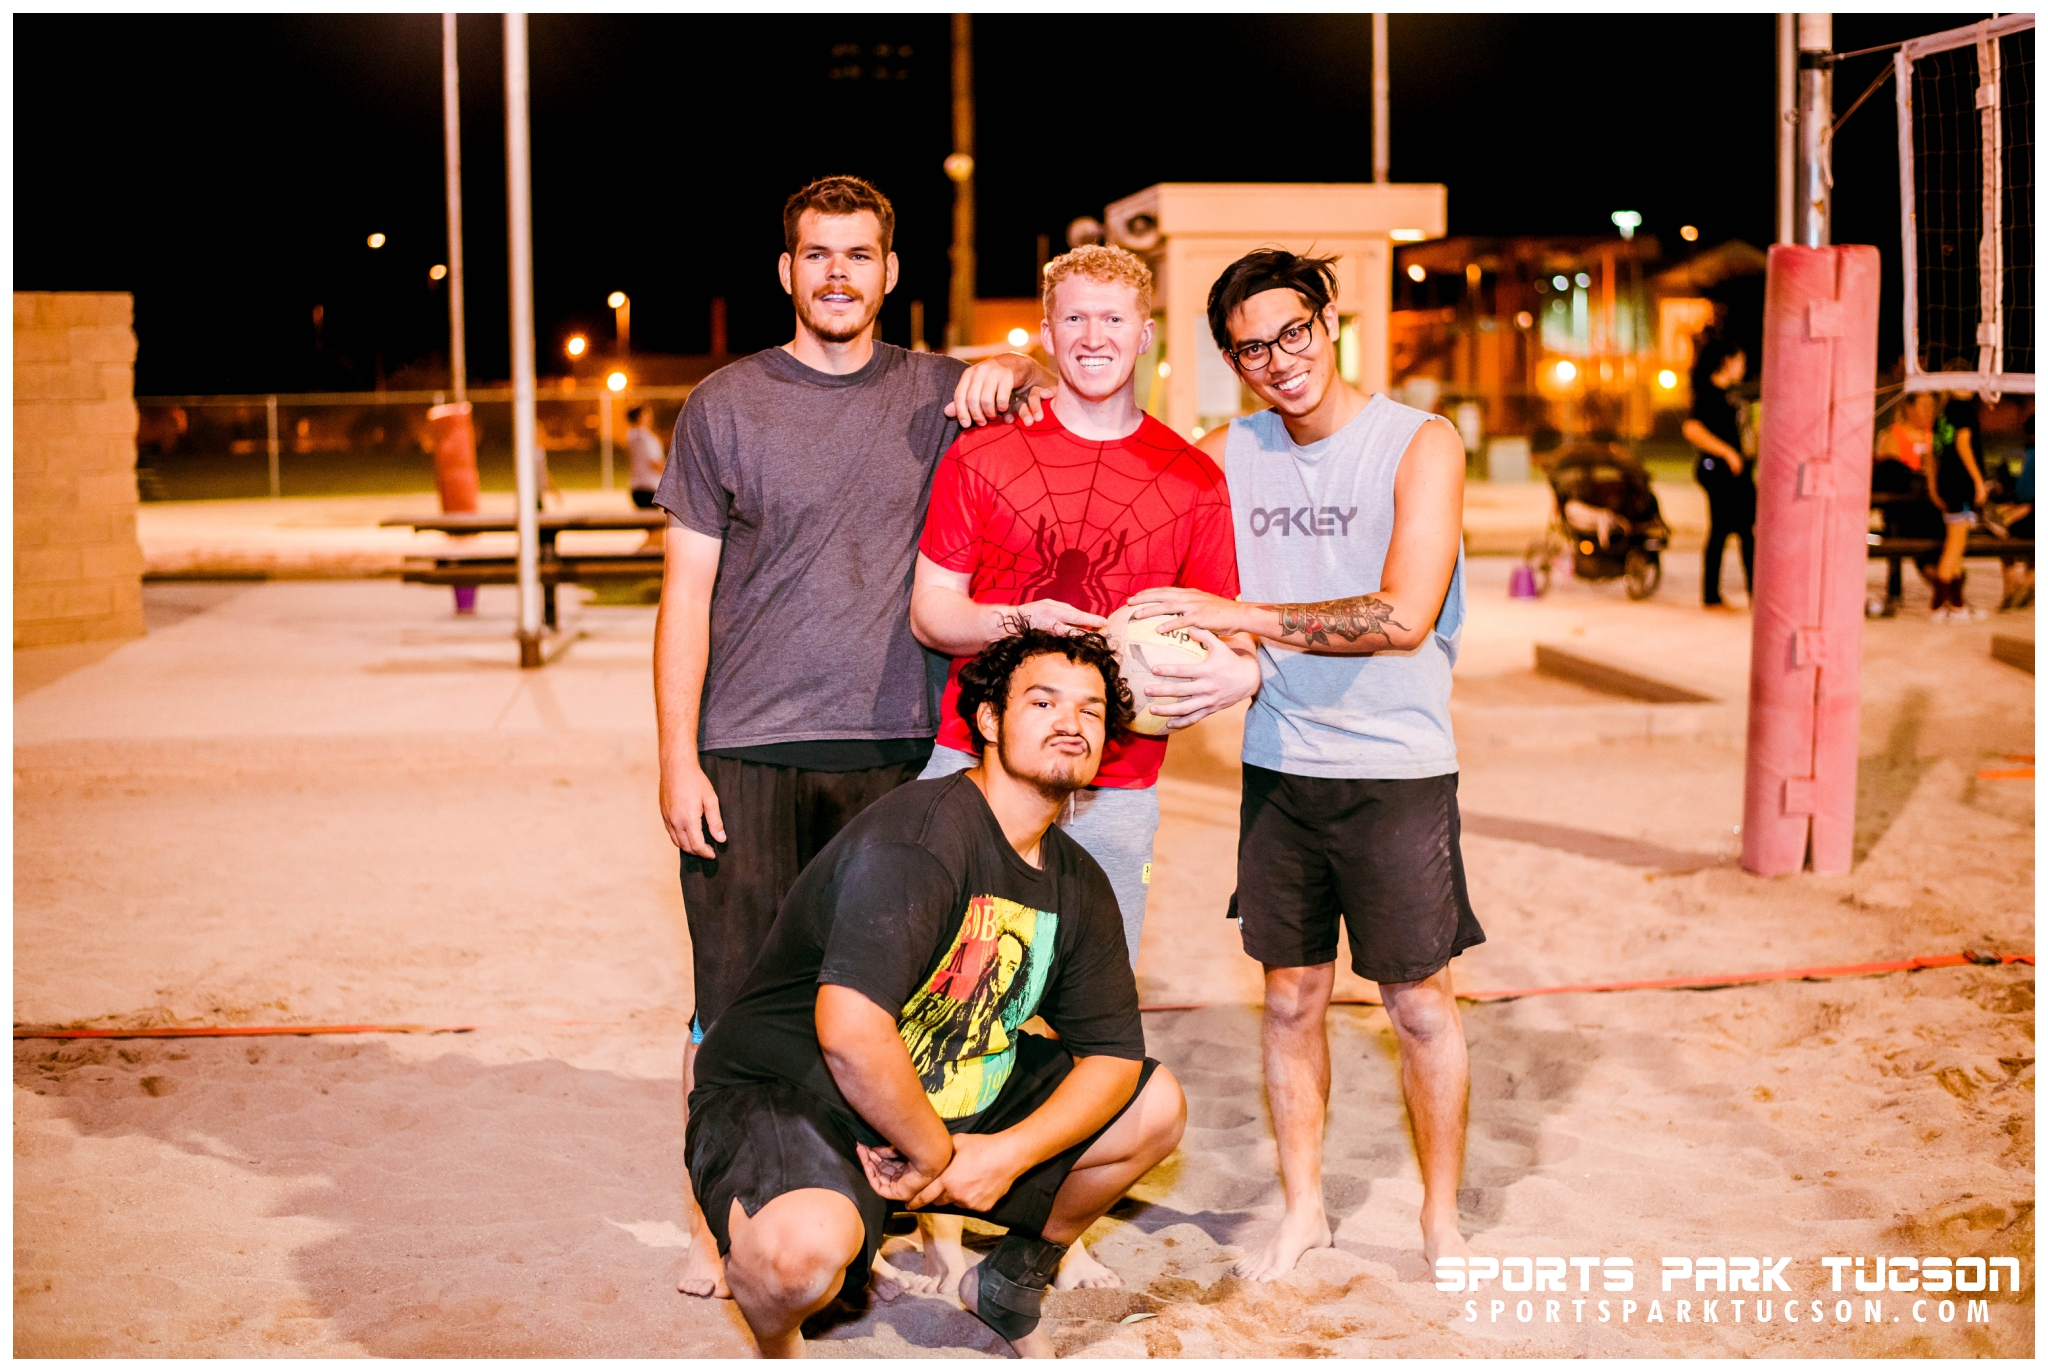 Volleyball Tue Mens 4 v 4 - Gold, Team: How I Set Your Mother